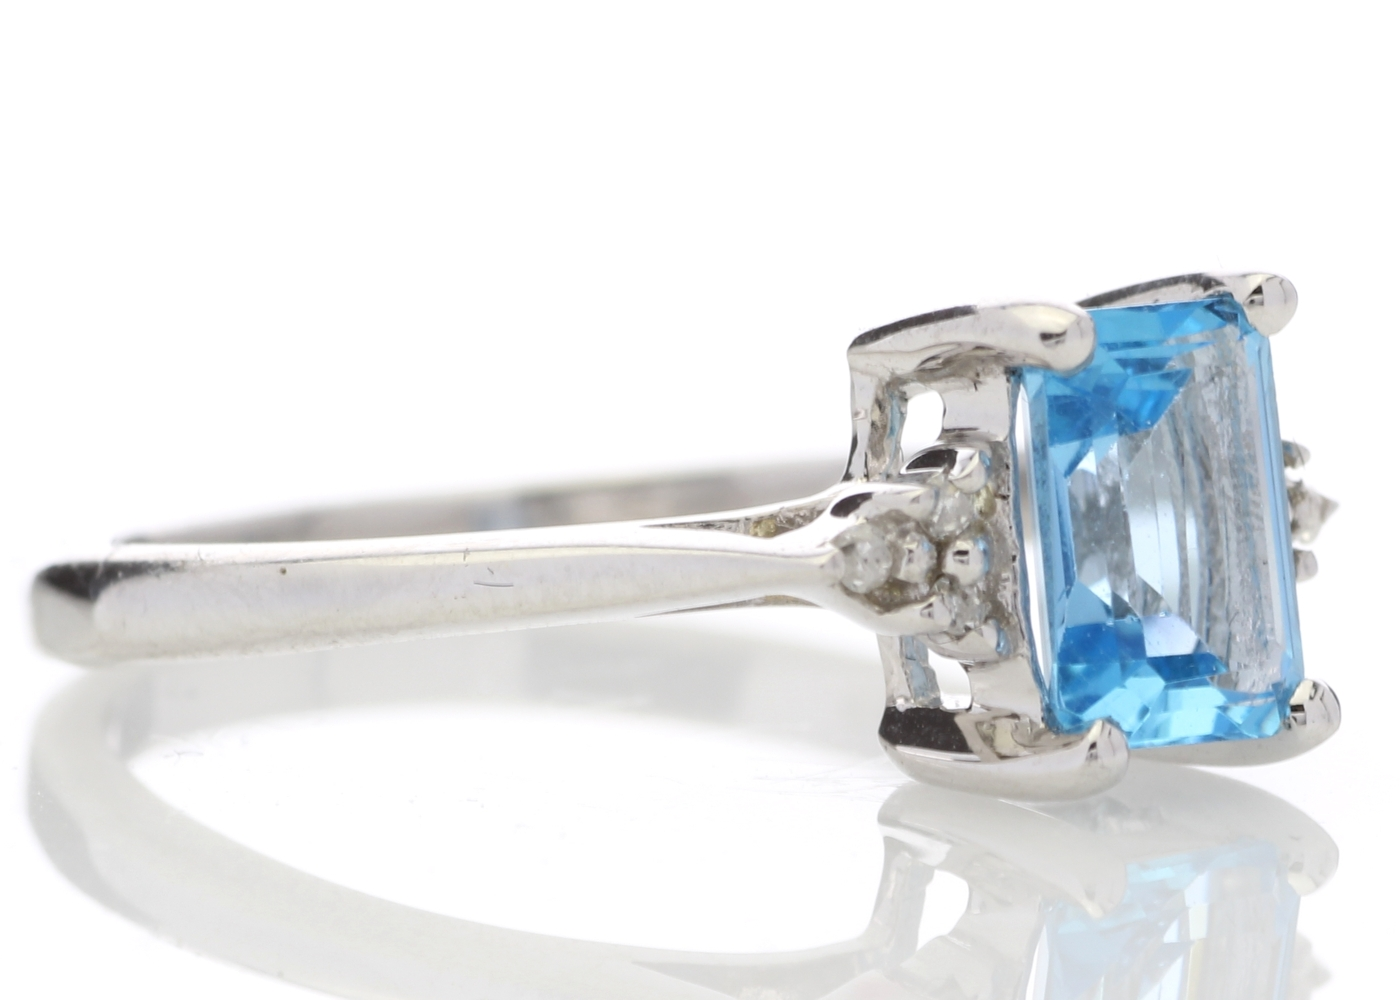 9ct White Gold Diamond And Blue Topaz Ring 0.03 Carats - Image 4 of 4